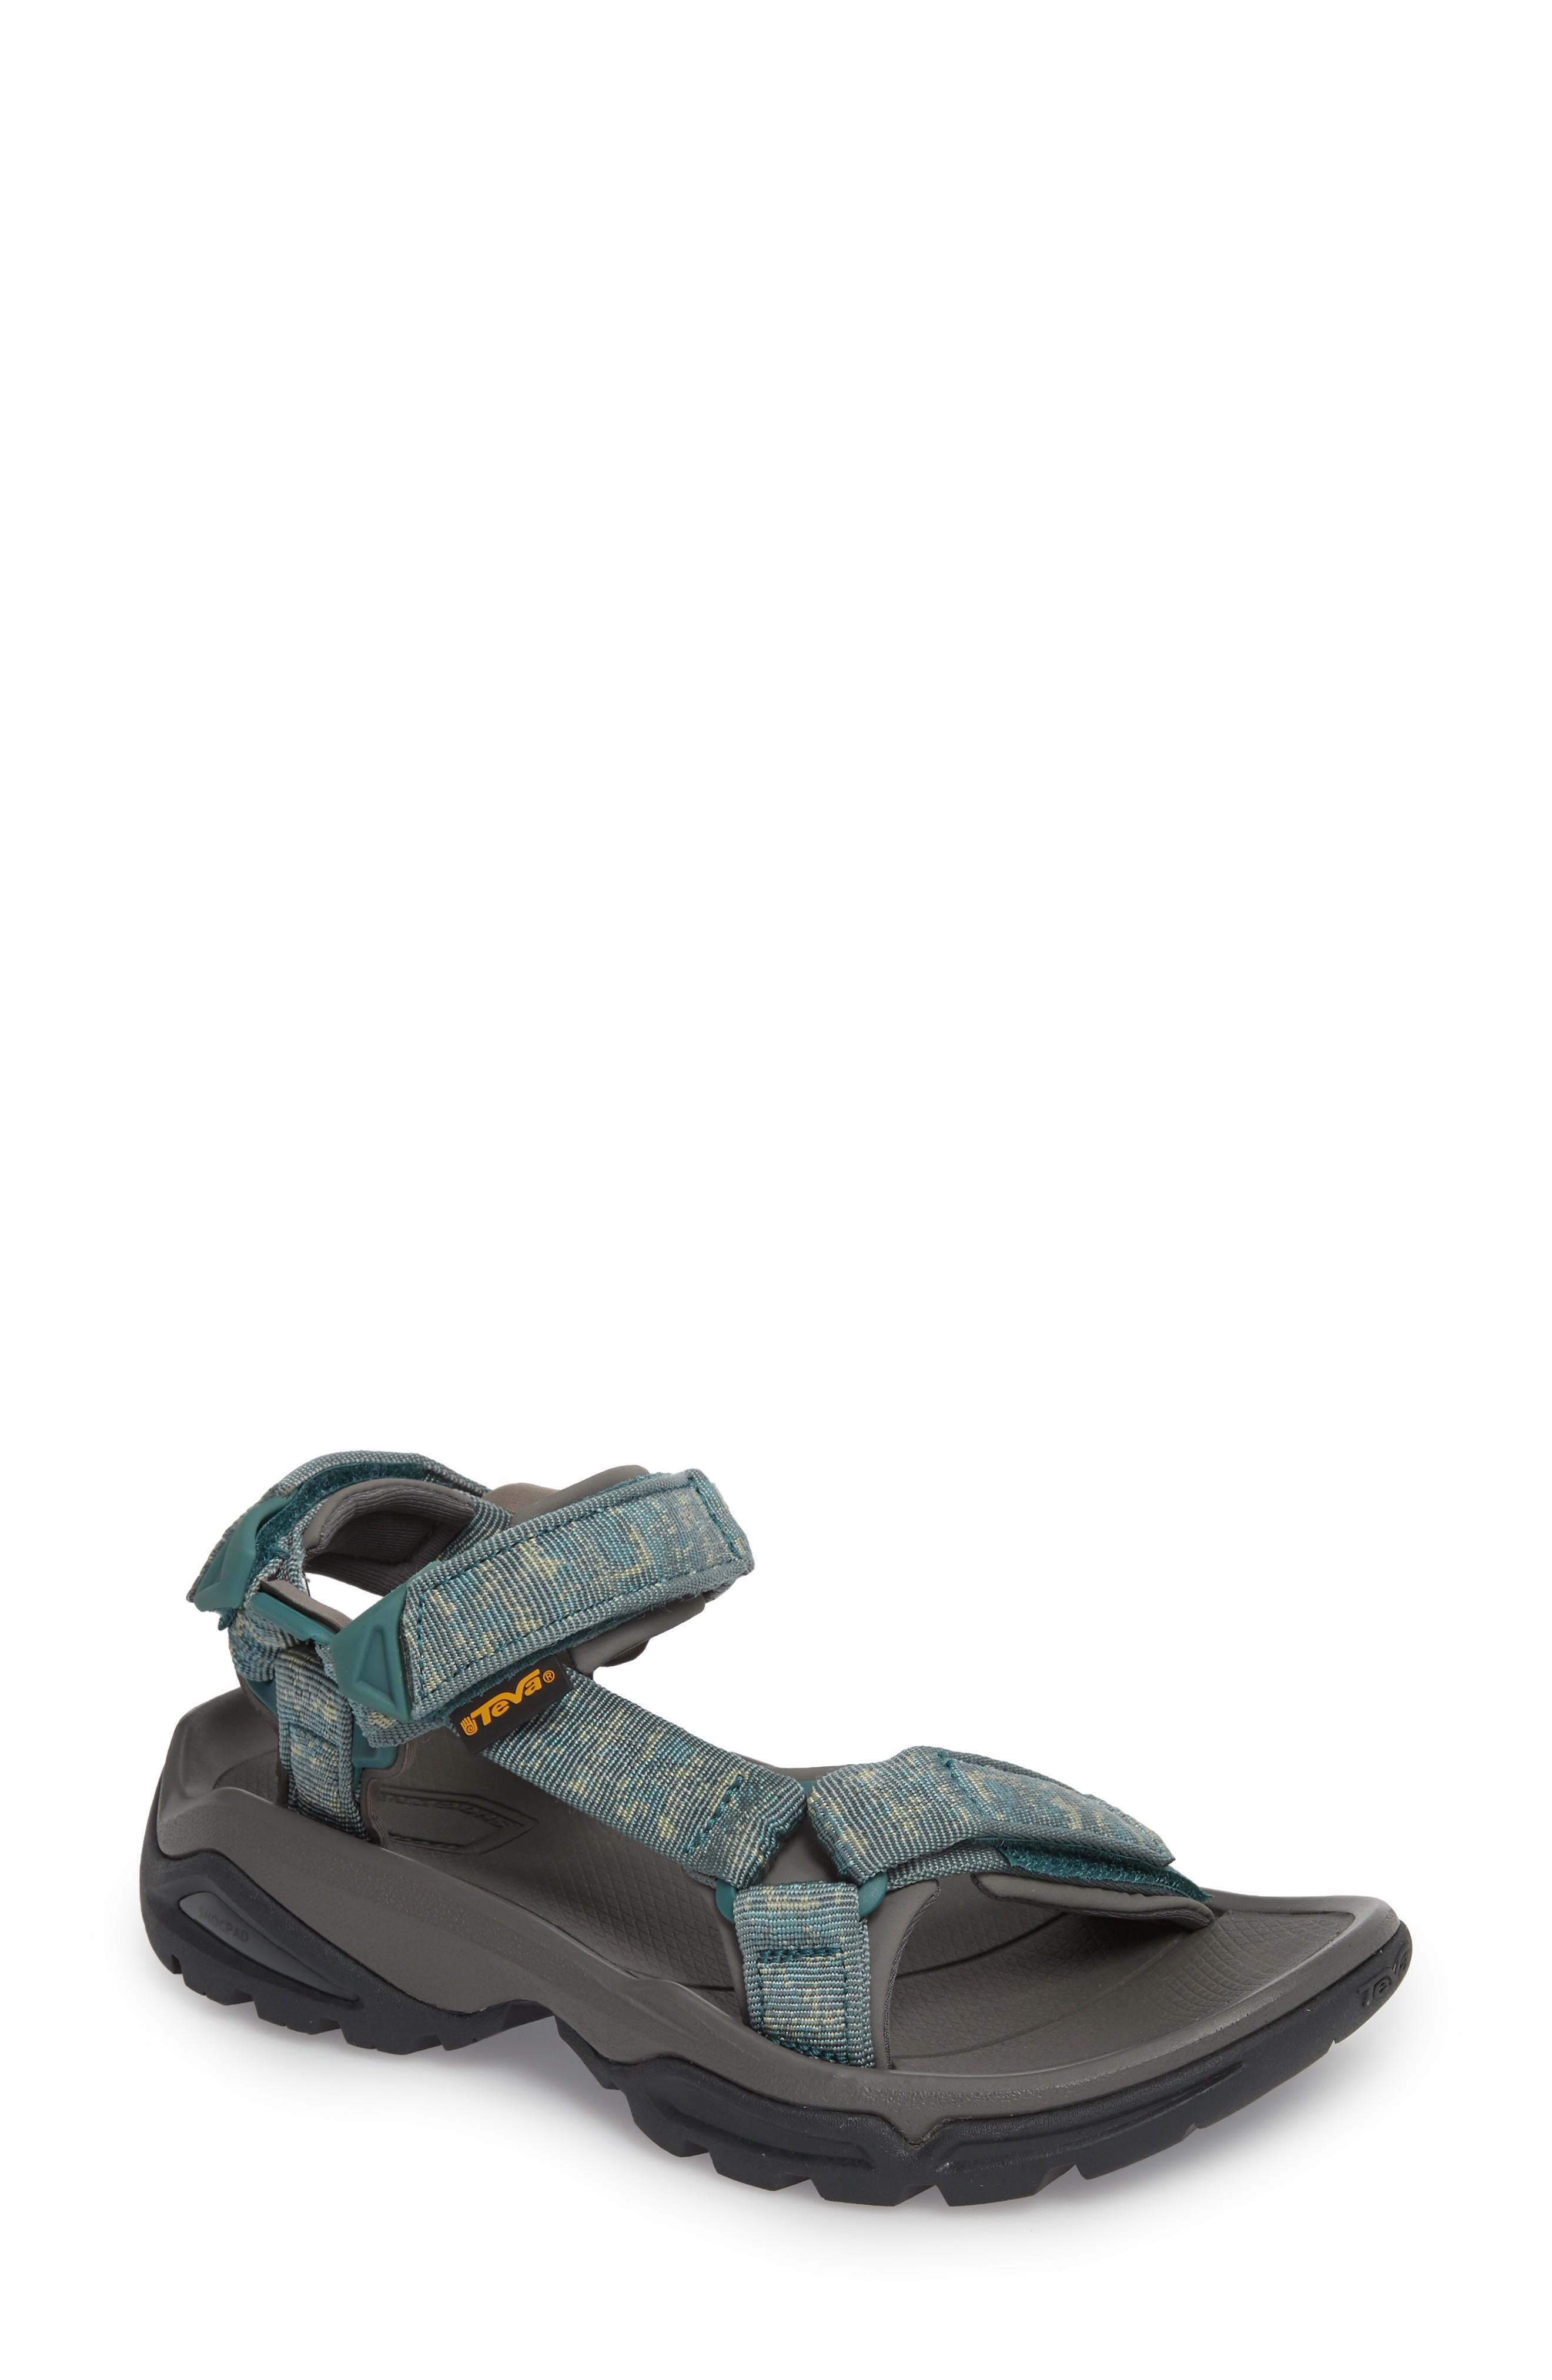 933847fb8f59 Teva Terra Fi 4 Sport Sandal In Rocio North Atlantic